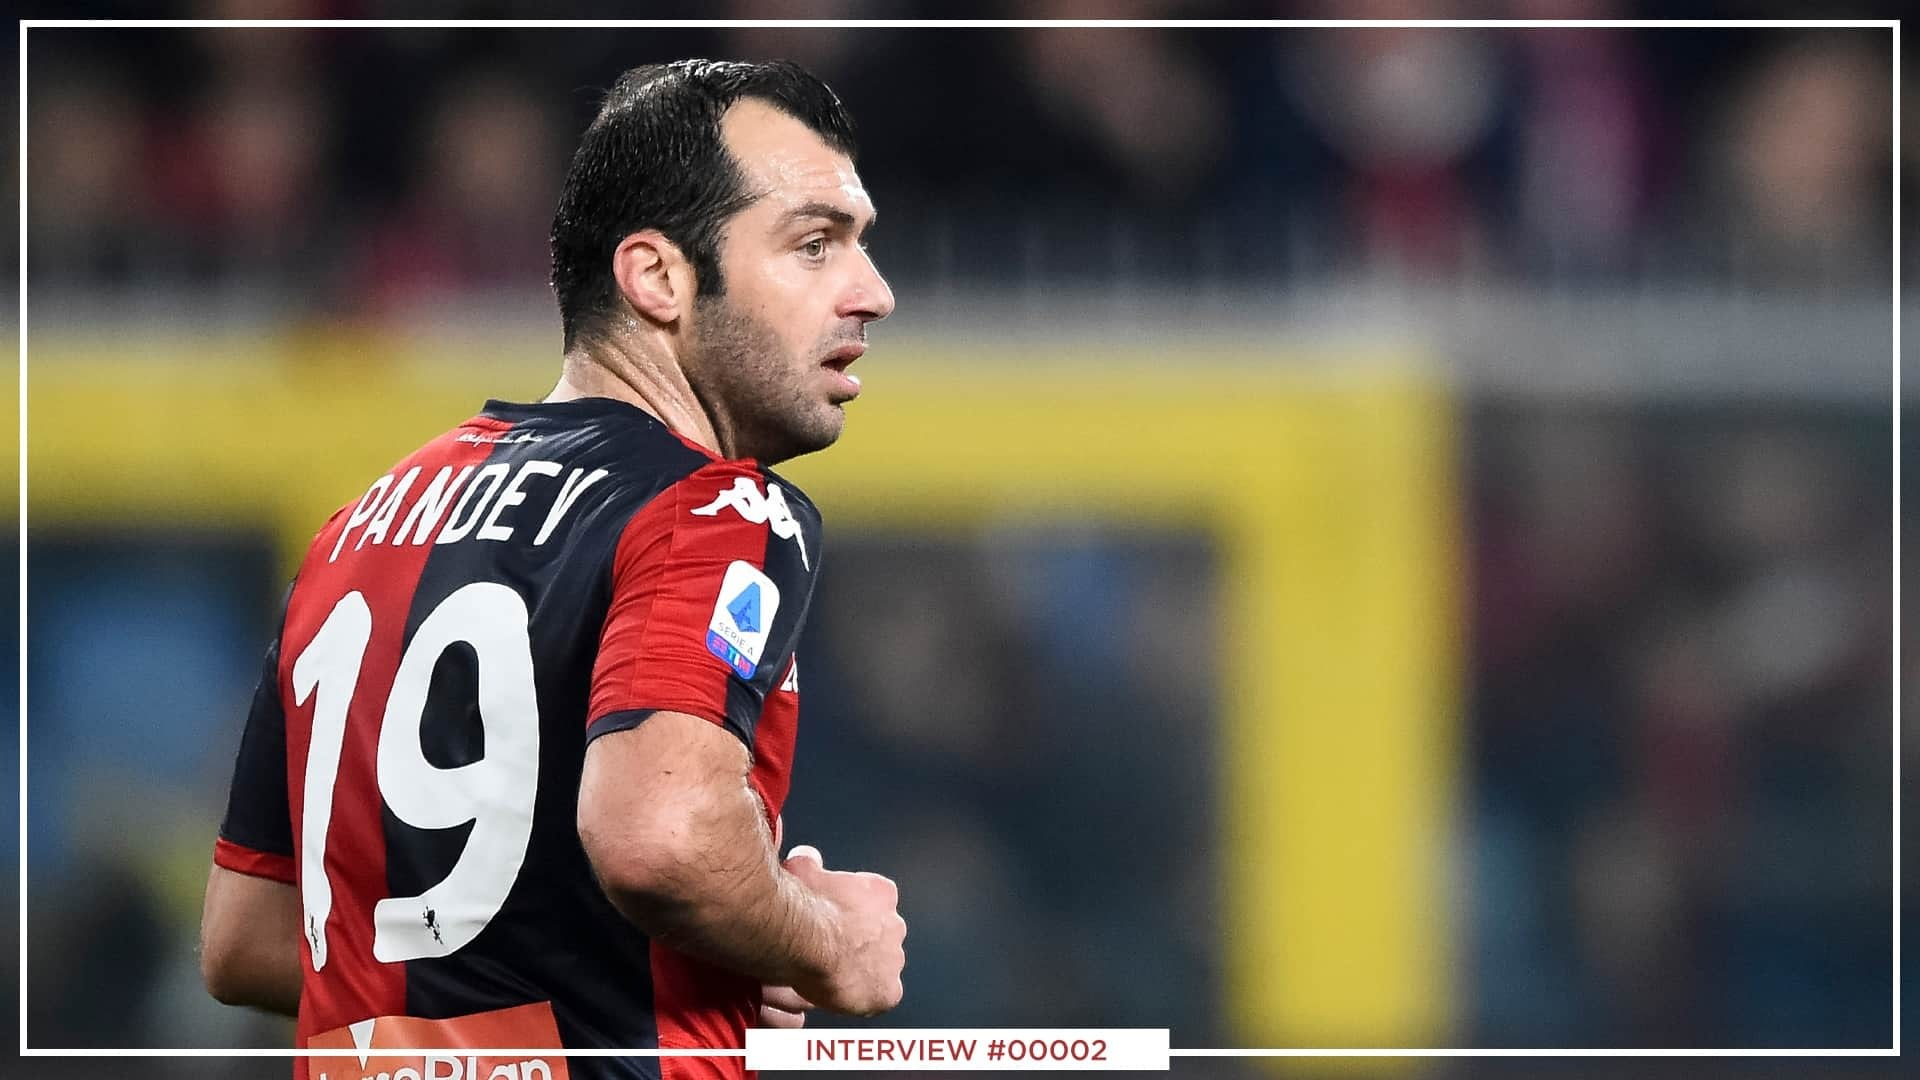 Goran Pandev while playing football. He is wearing his Milan jersey with the number 19 on the back.